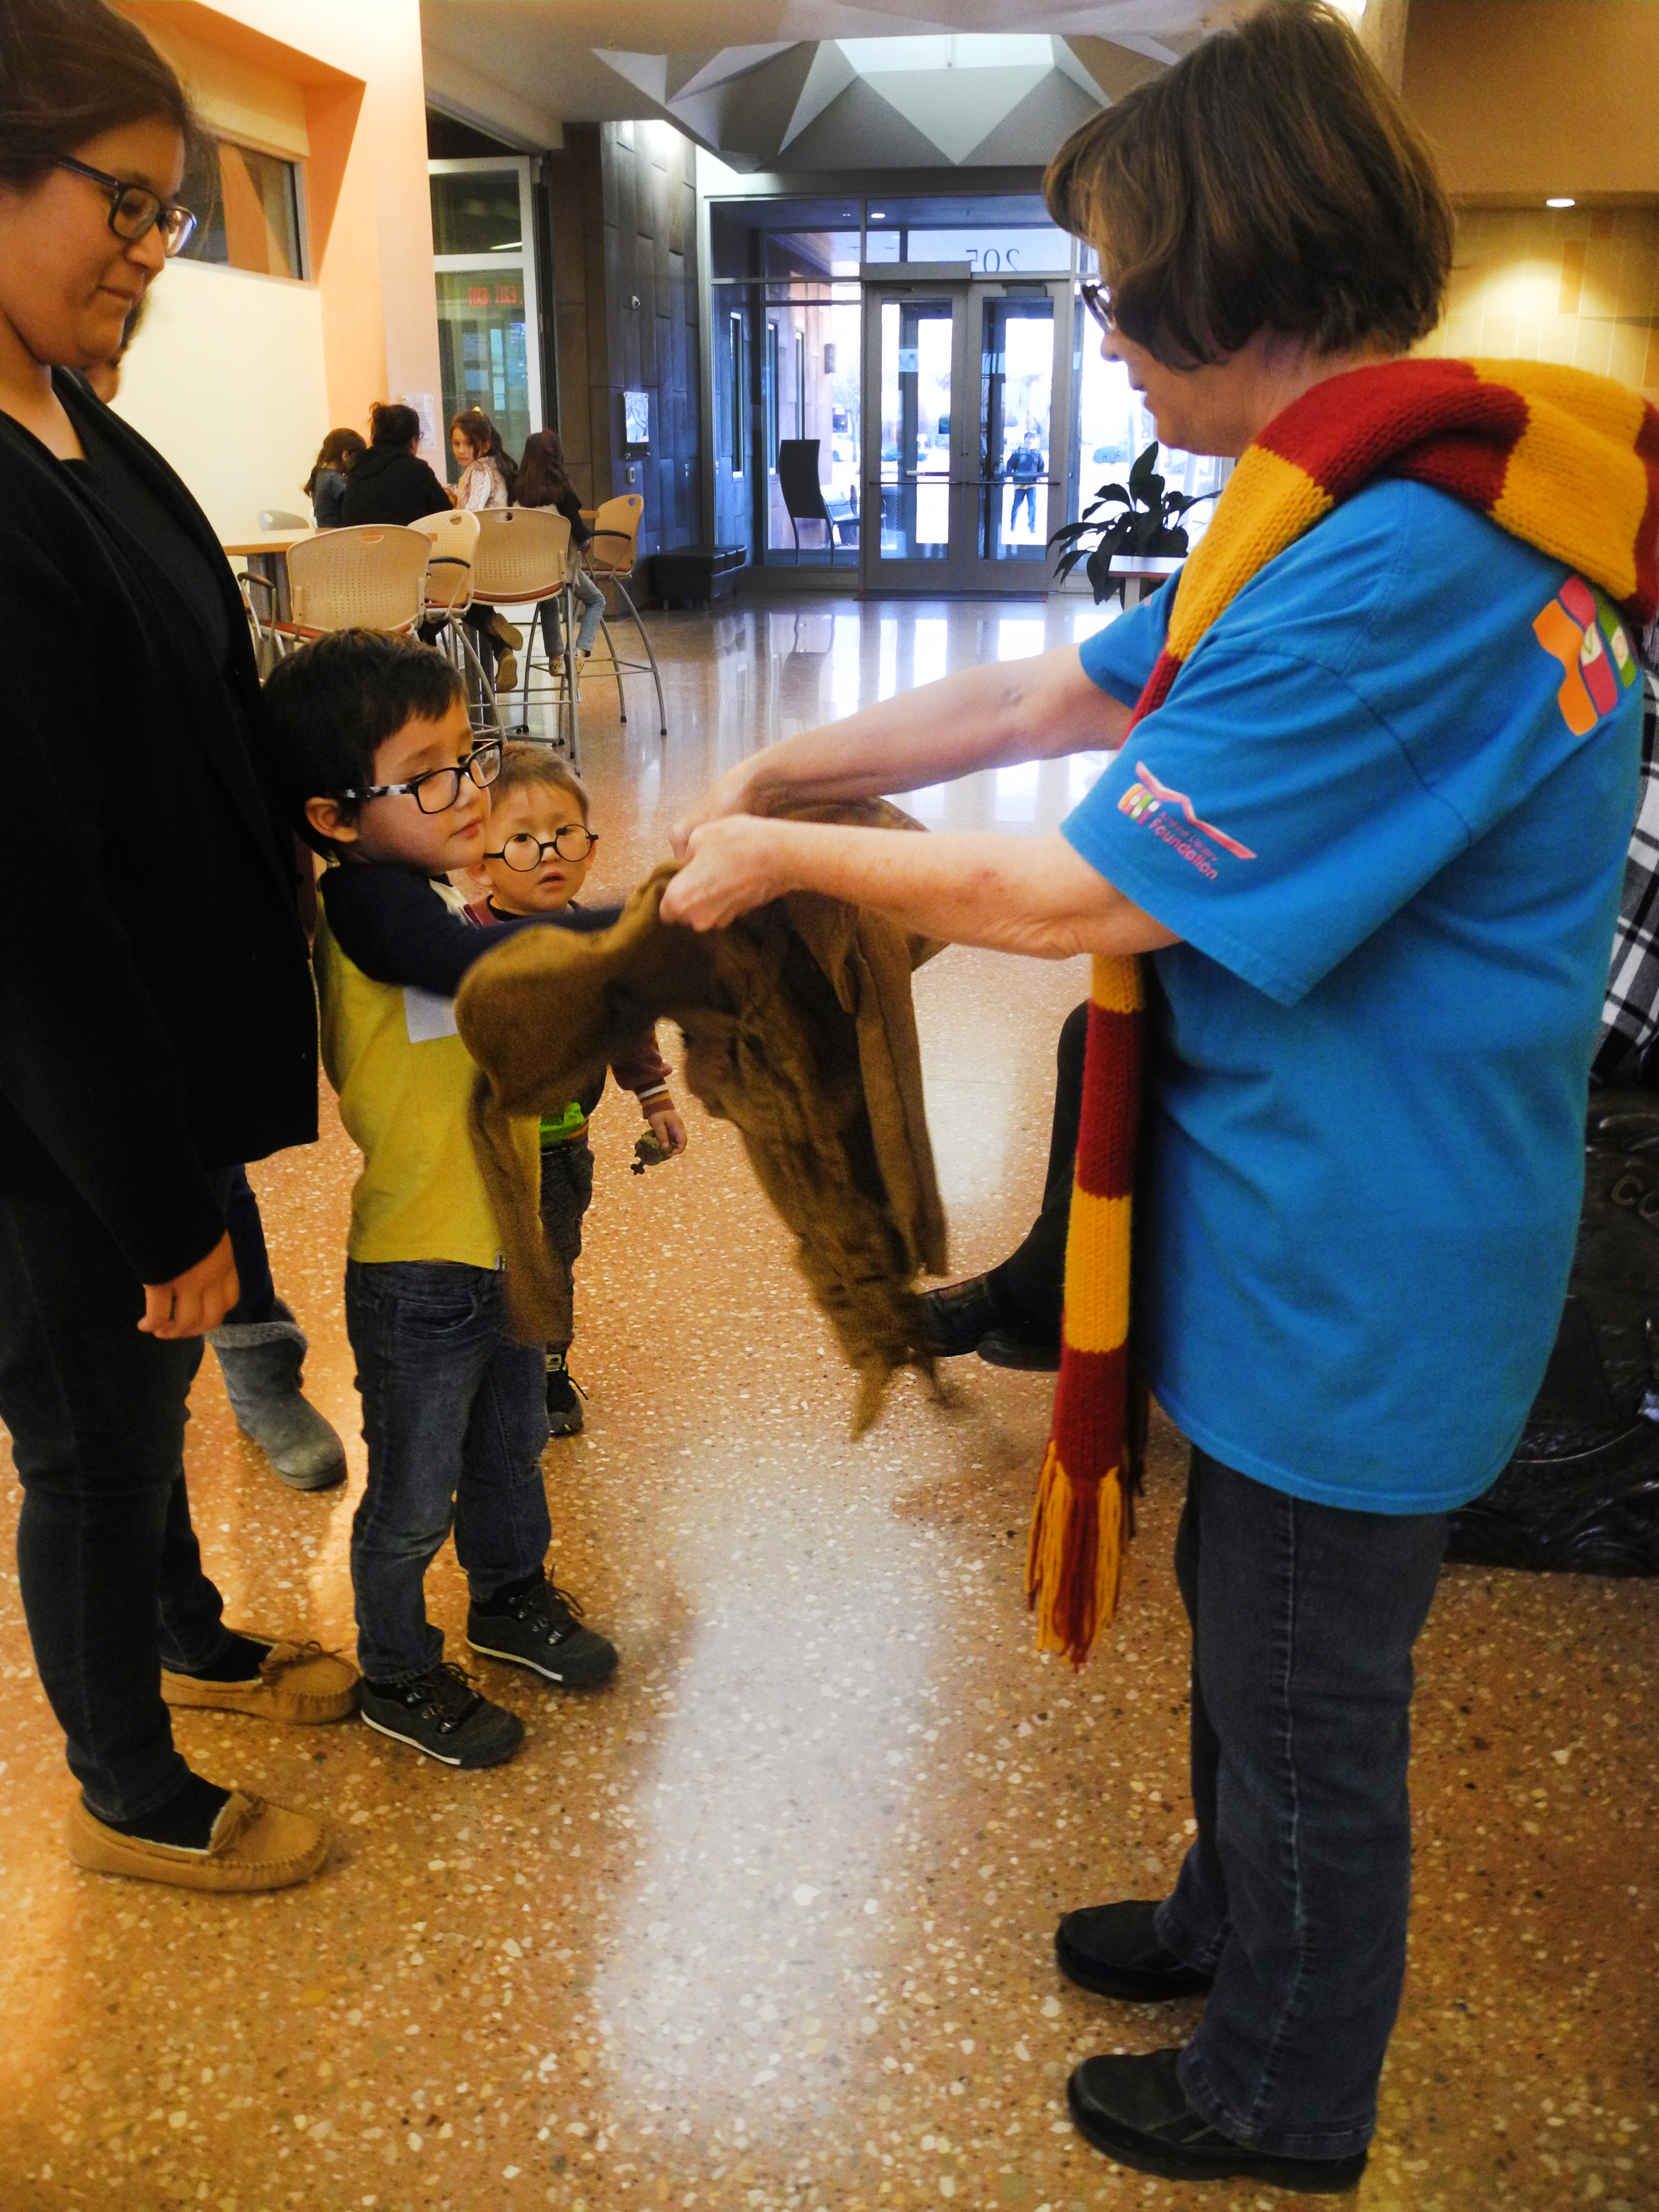 A boy chooses his Triwizard Tournament Champion character out of the Sorting Hat at a Harry Potter Book Night event.